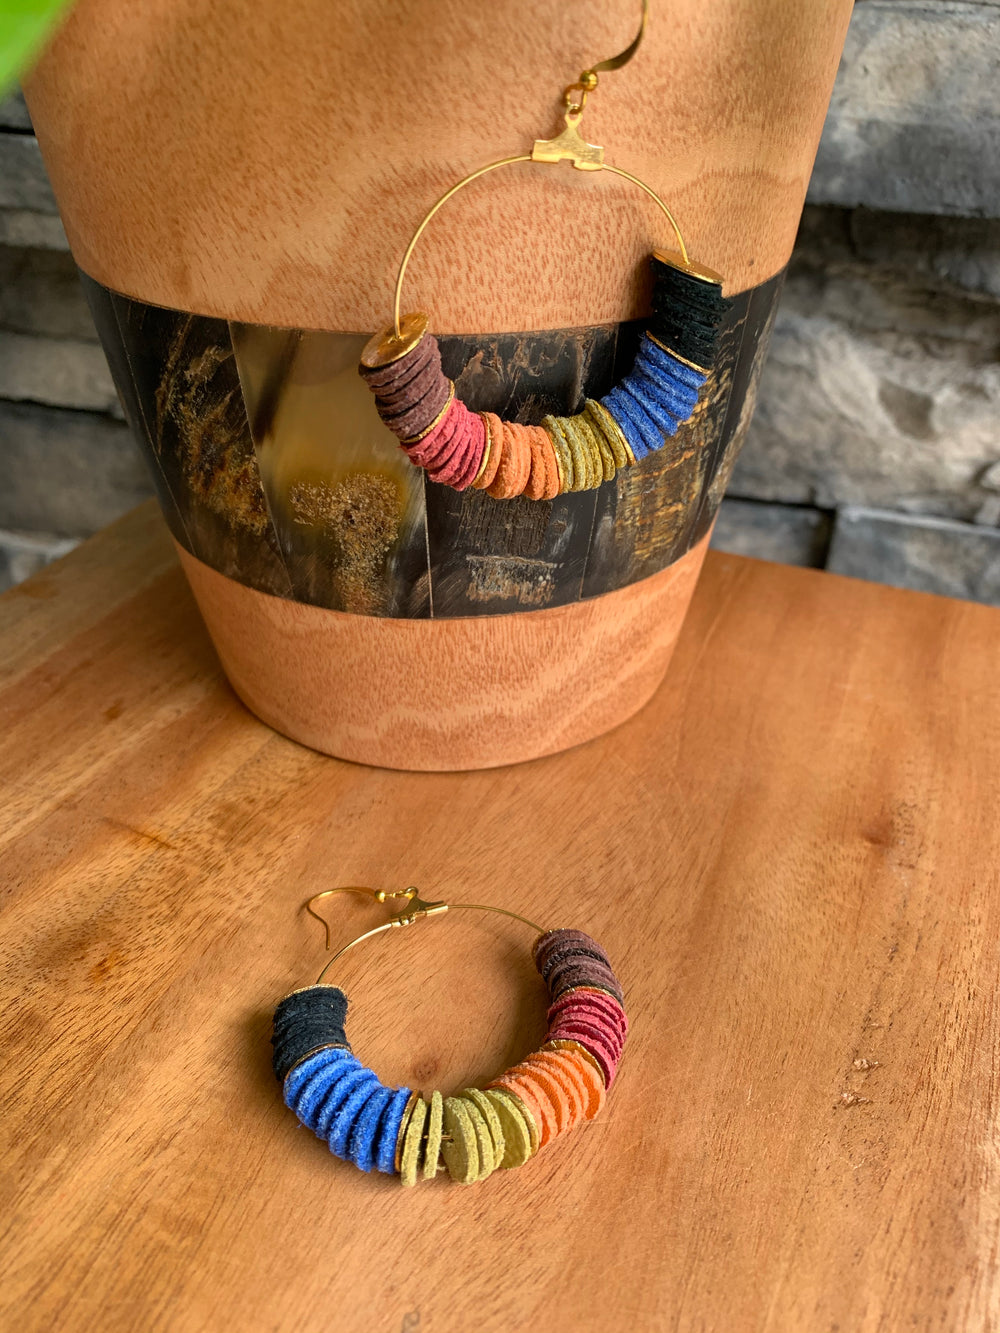 Funky Boho Chic Hoop Earrings by DuHope from Rwanda